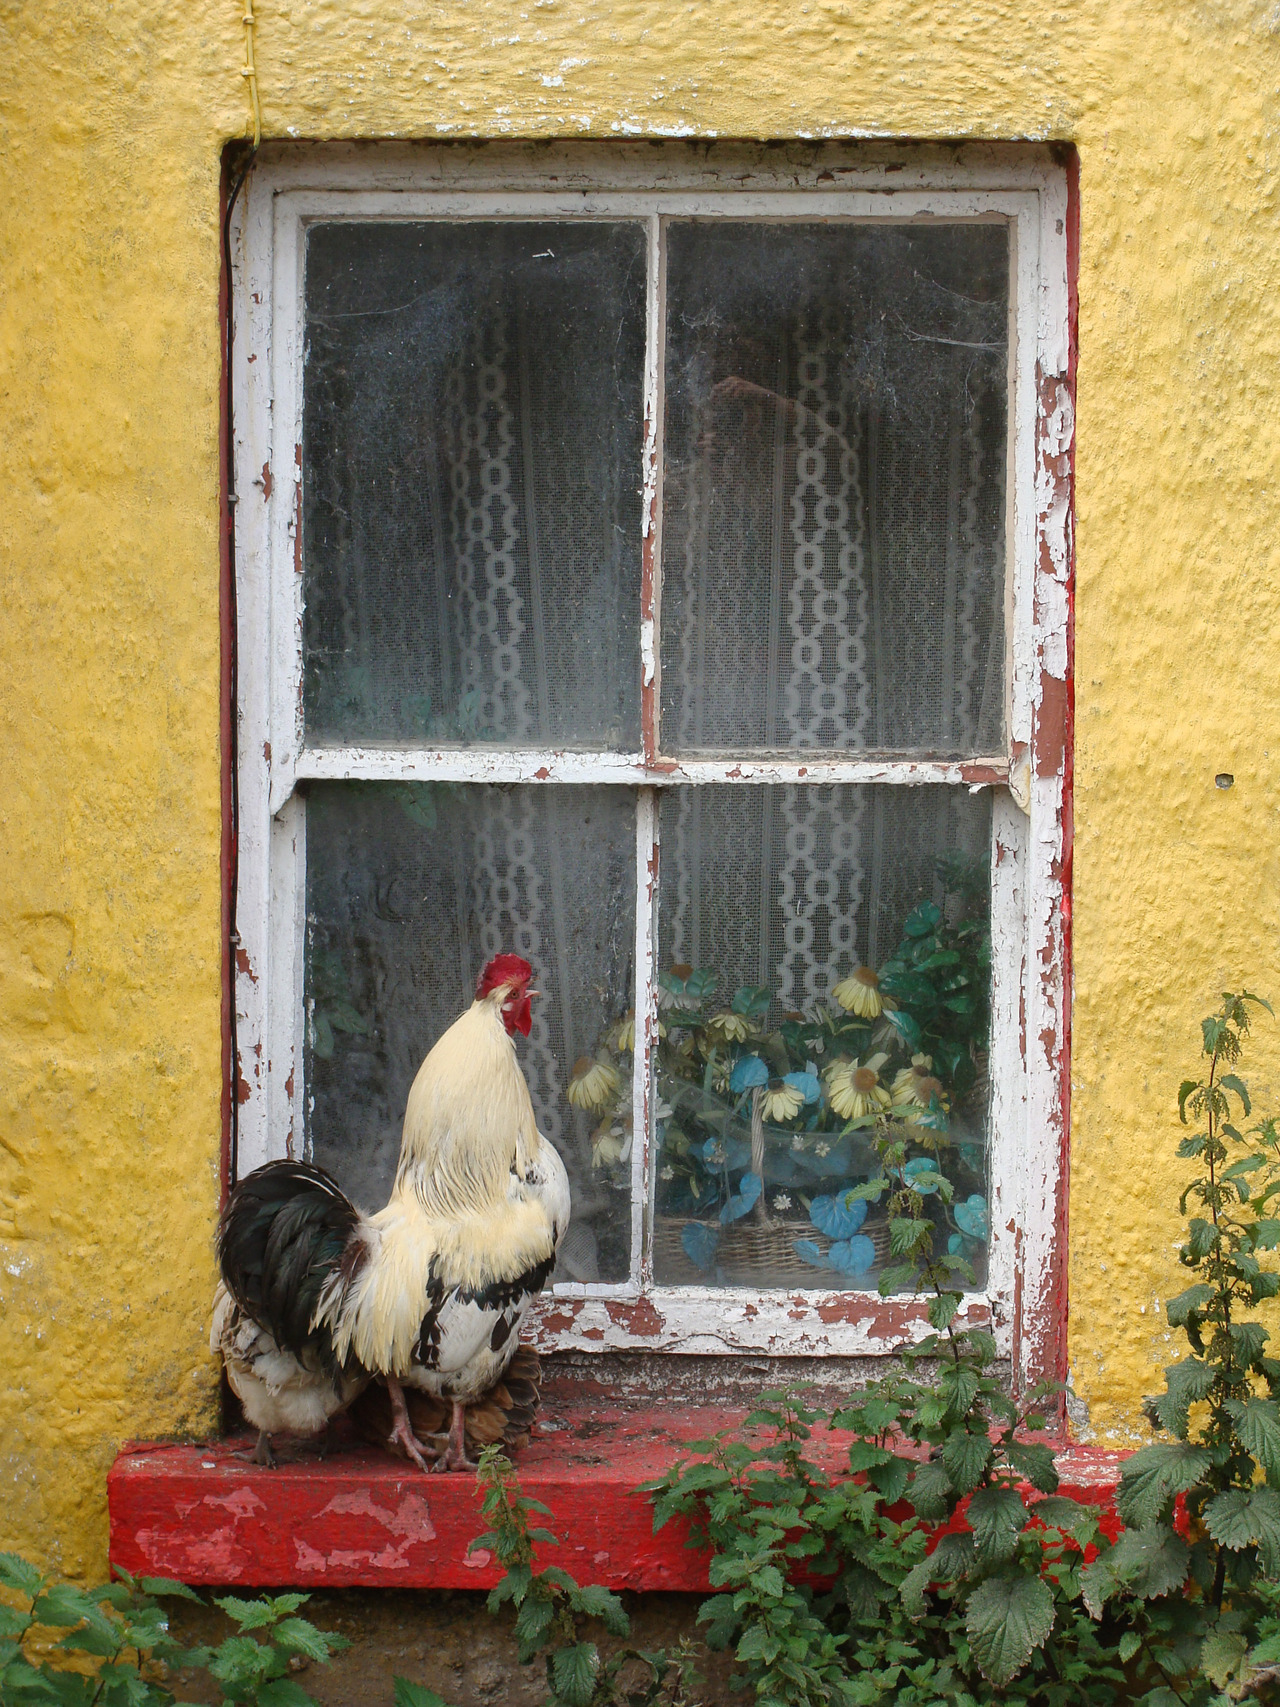 Rooster at a window sill in the Aran Islands, Ireland.